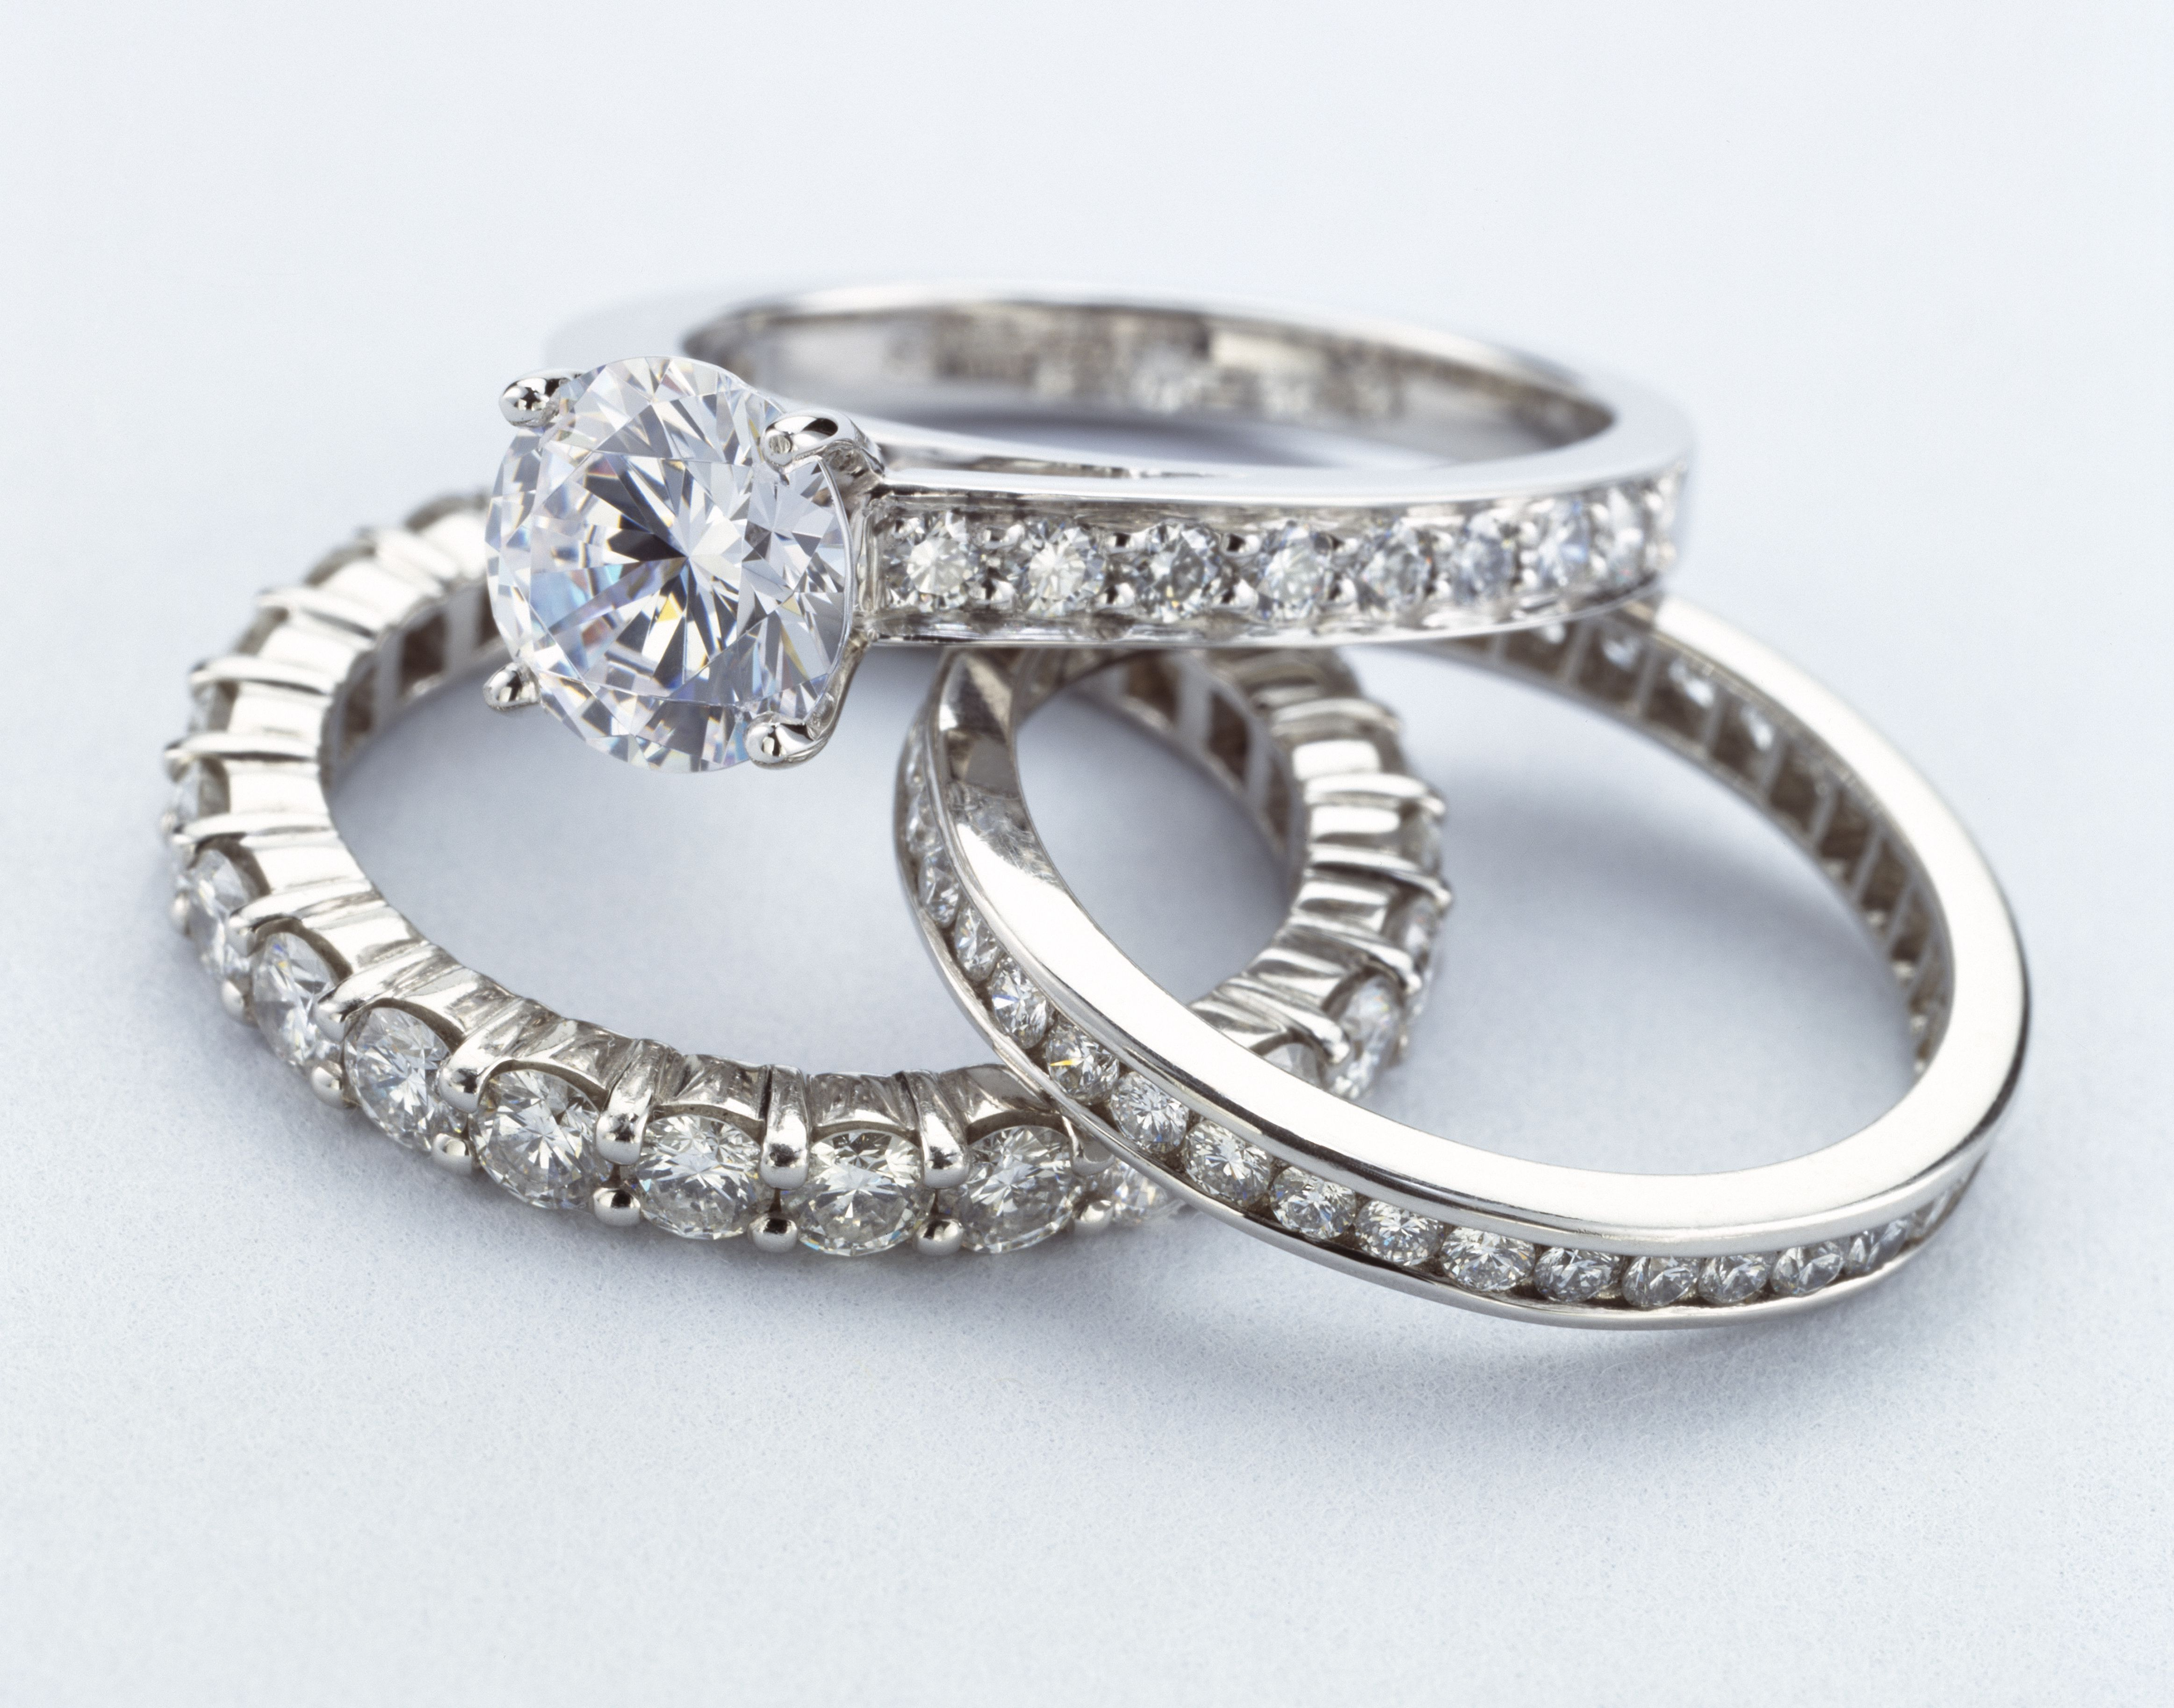 What Is a Pave Setting